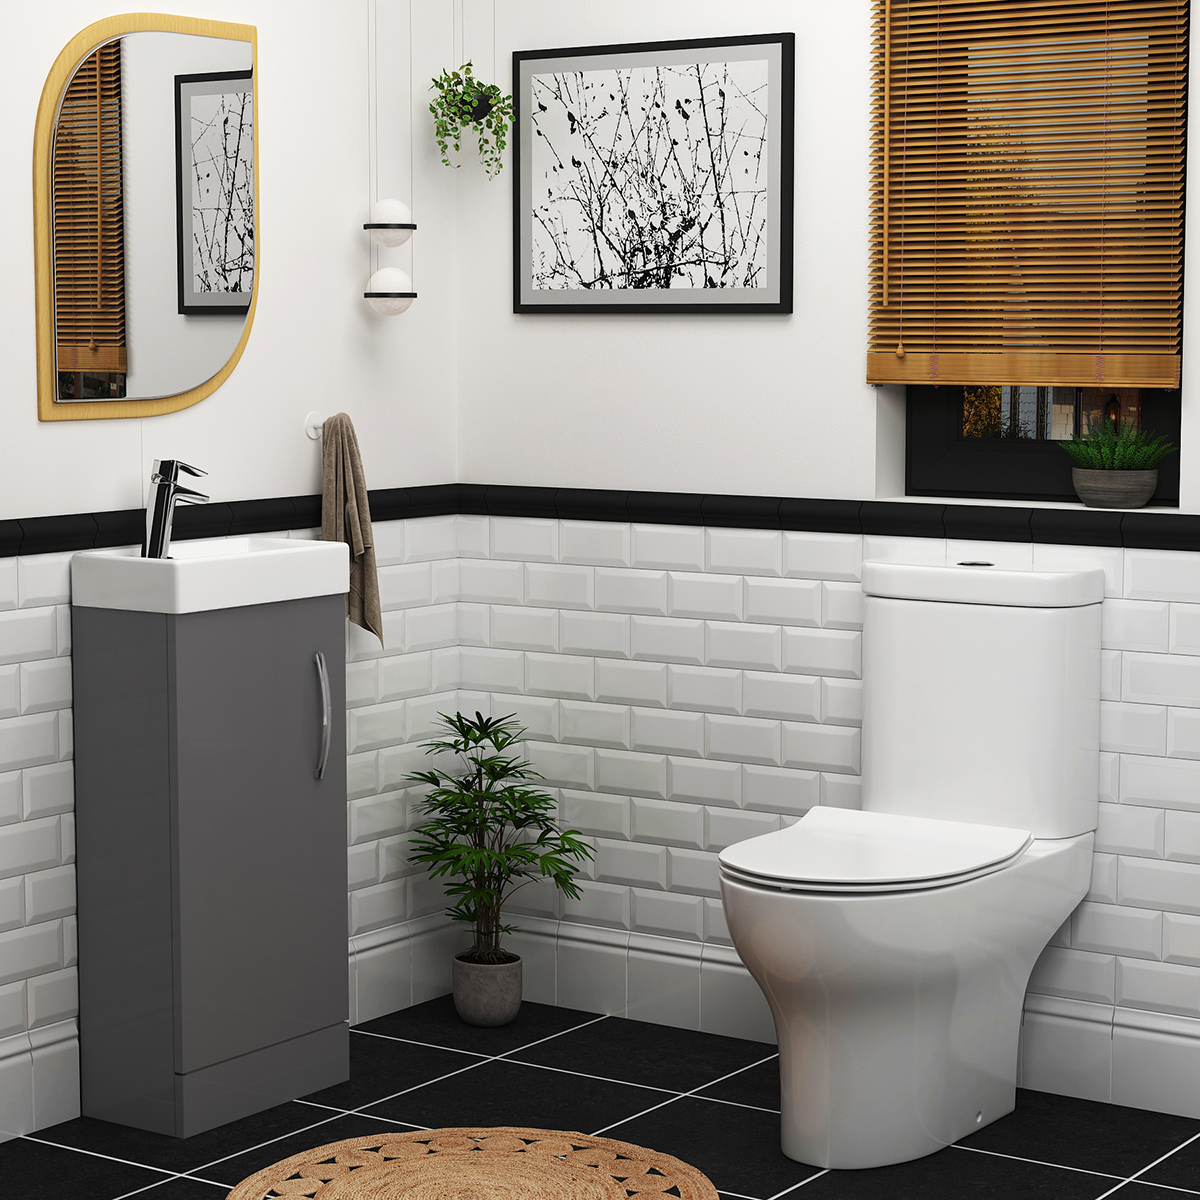 What adds up value to your home? A bathroom for sure